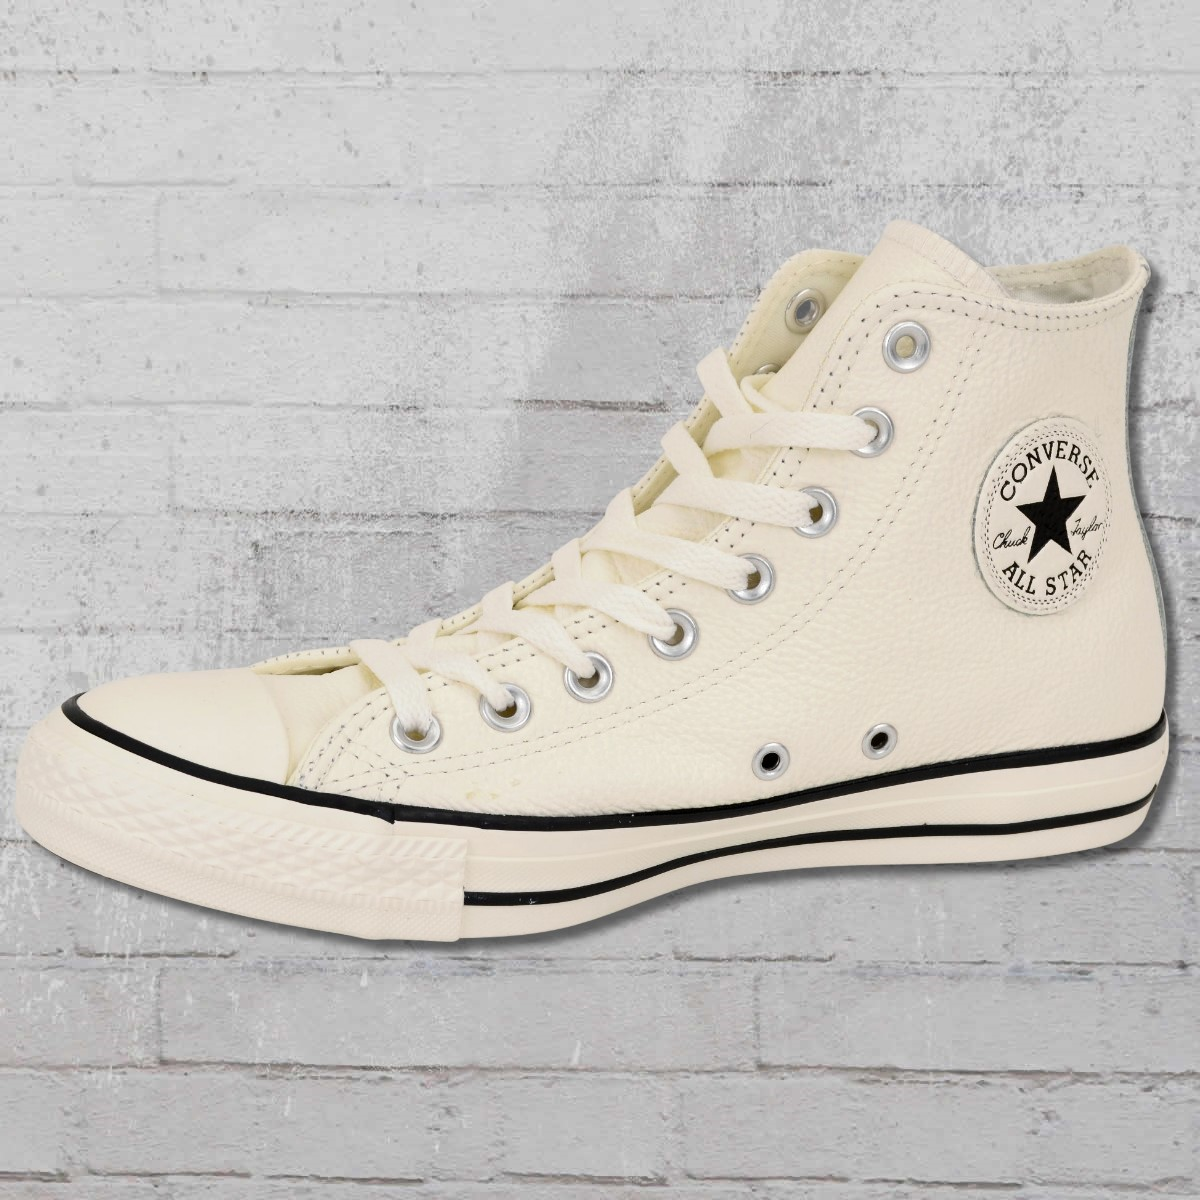 huge discount 77441 29f05 Order now | Converse Leather Chucks AS CT HI 157469 C Shoes ...